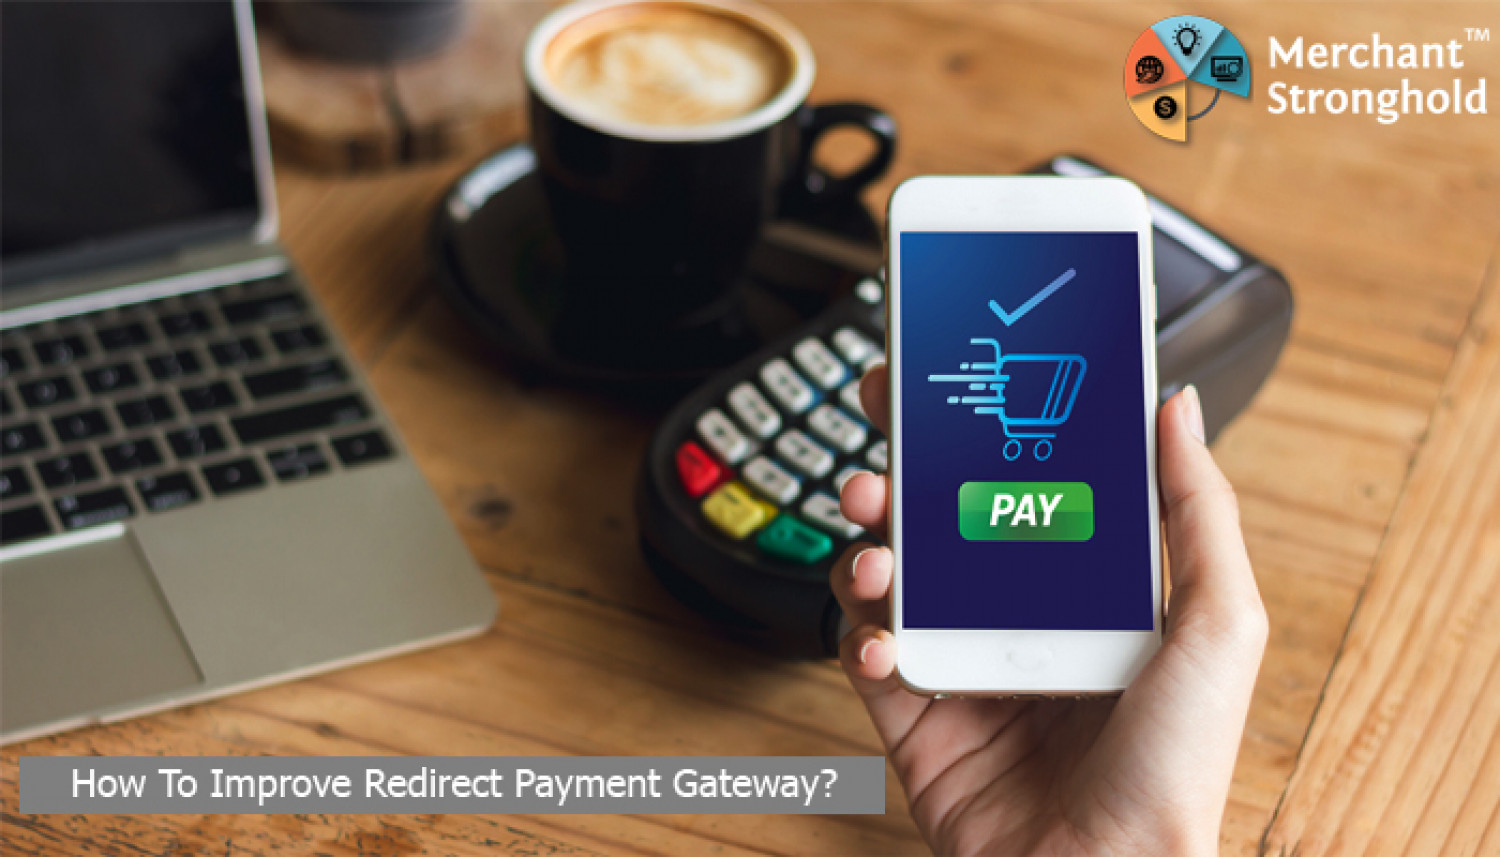 Understand Redirect Payment Gateway To Improve Payment Process Infographic